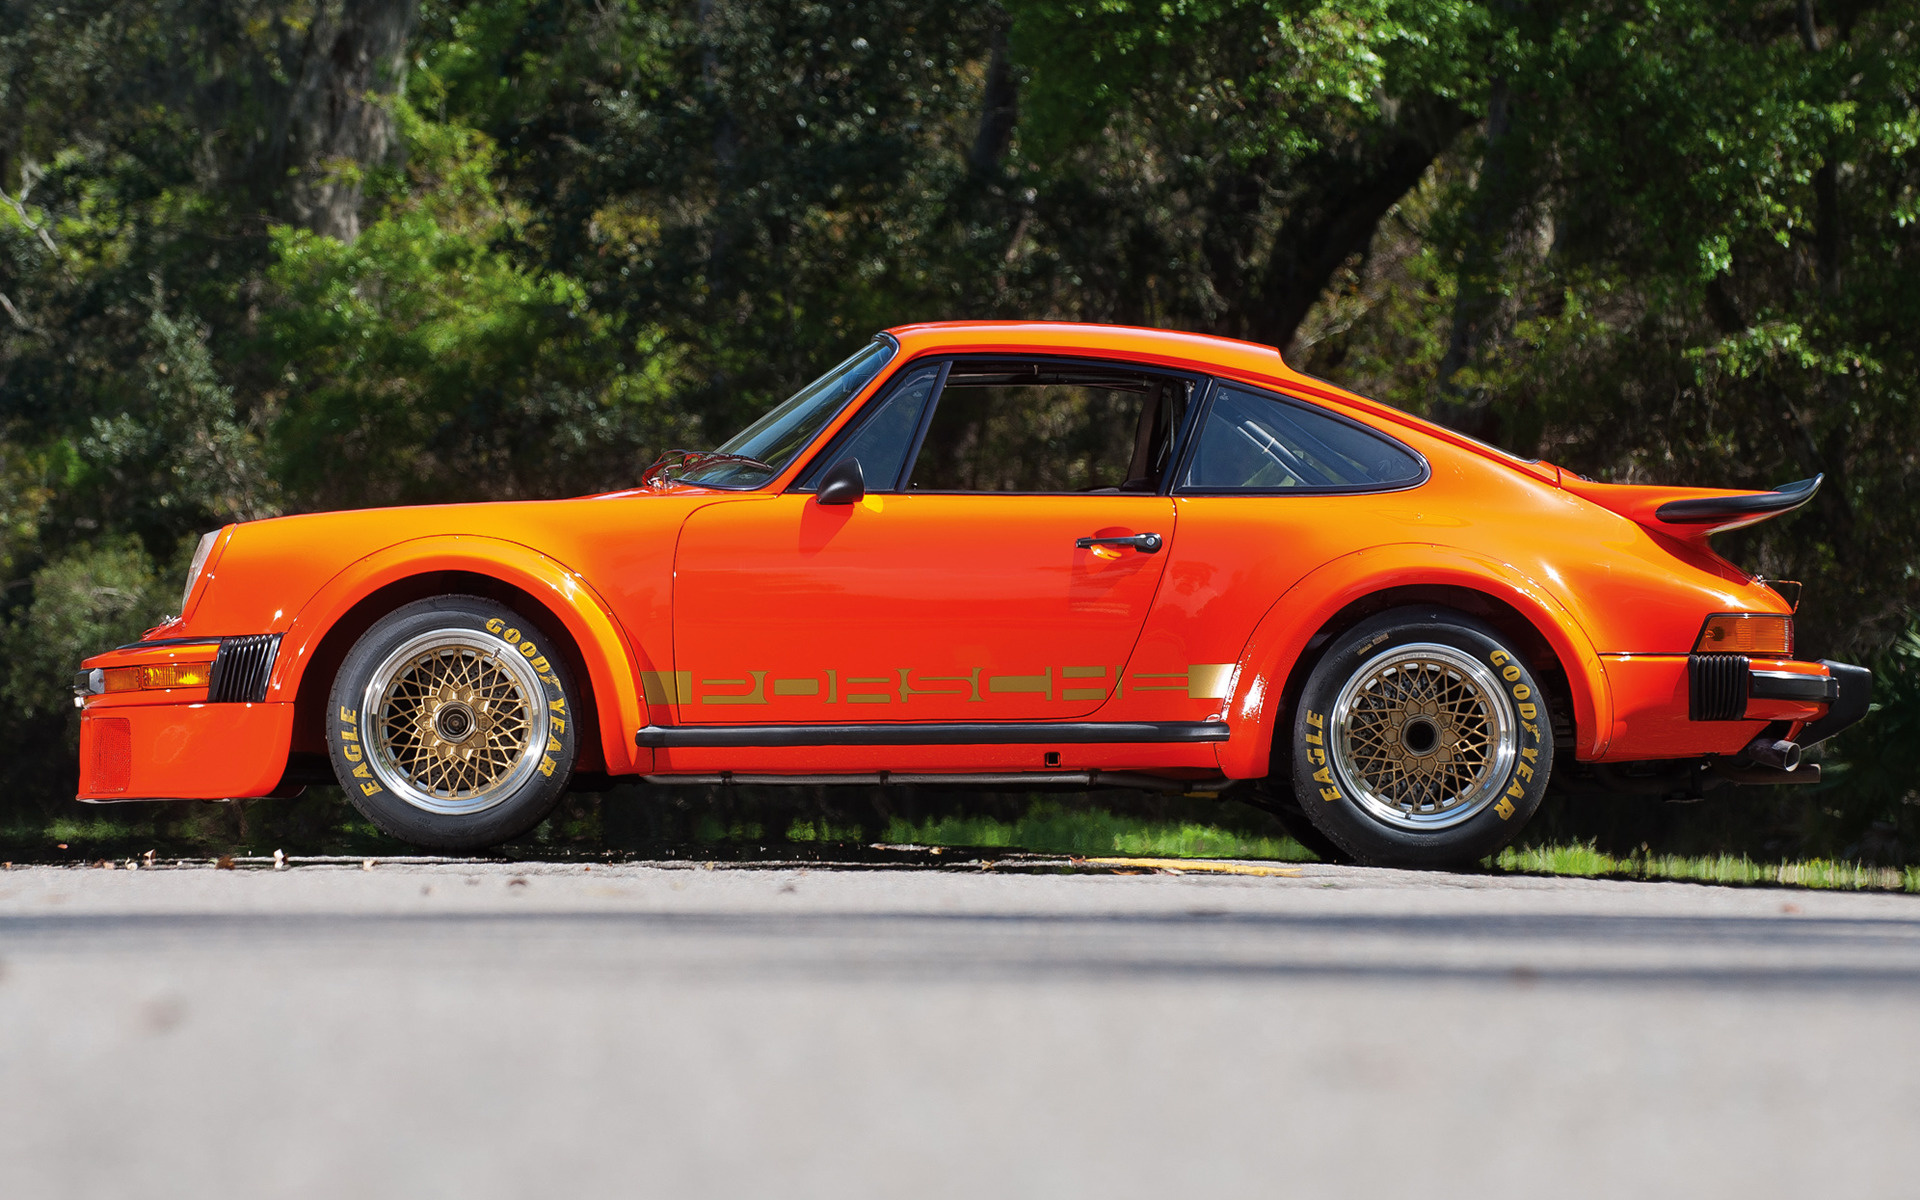 1976 Porsche 934 Turbo RSR - Wallpapers and HD Images ...